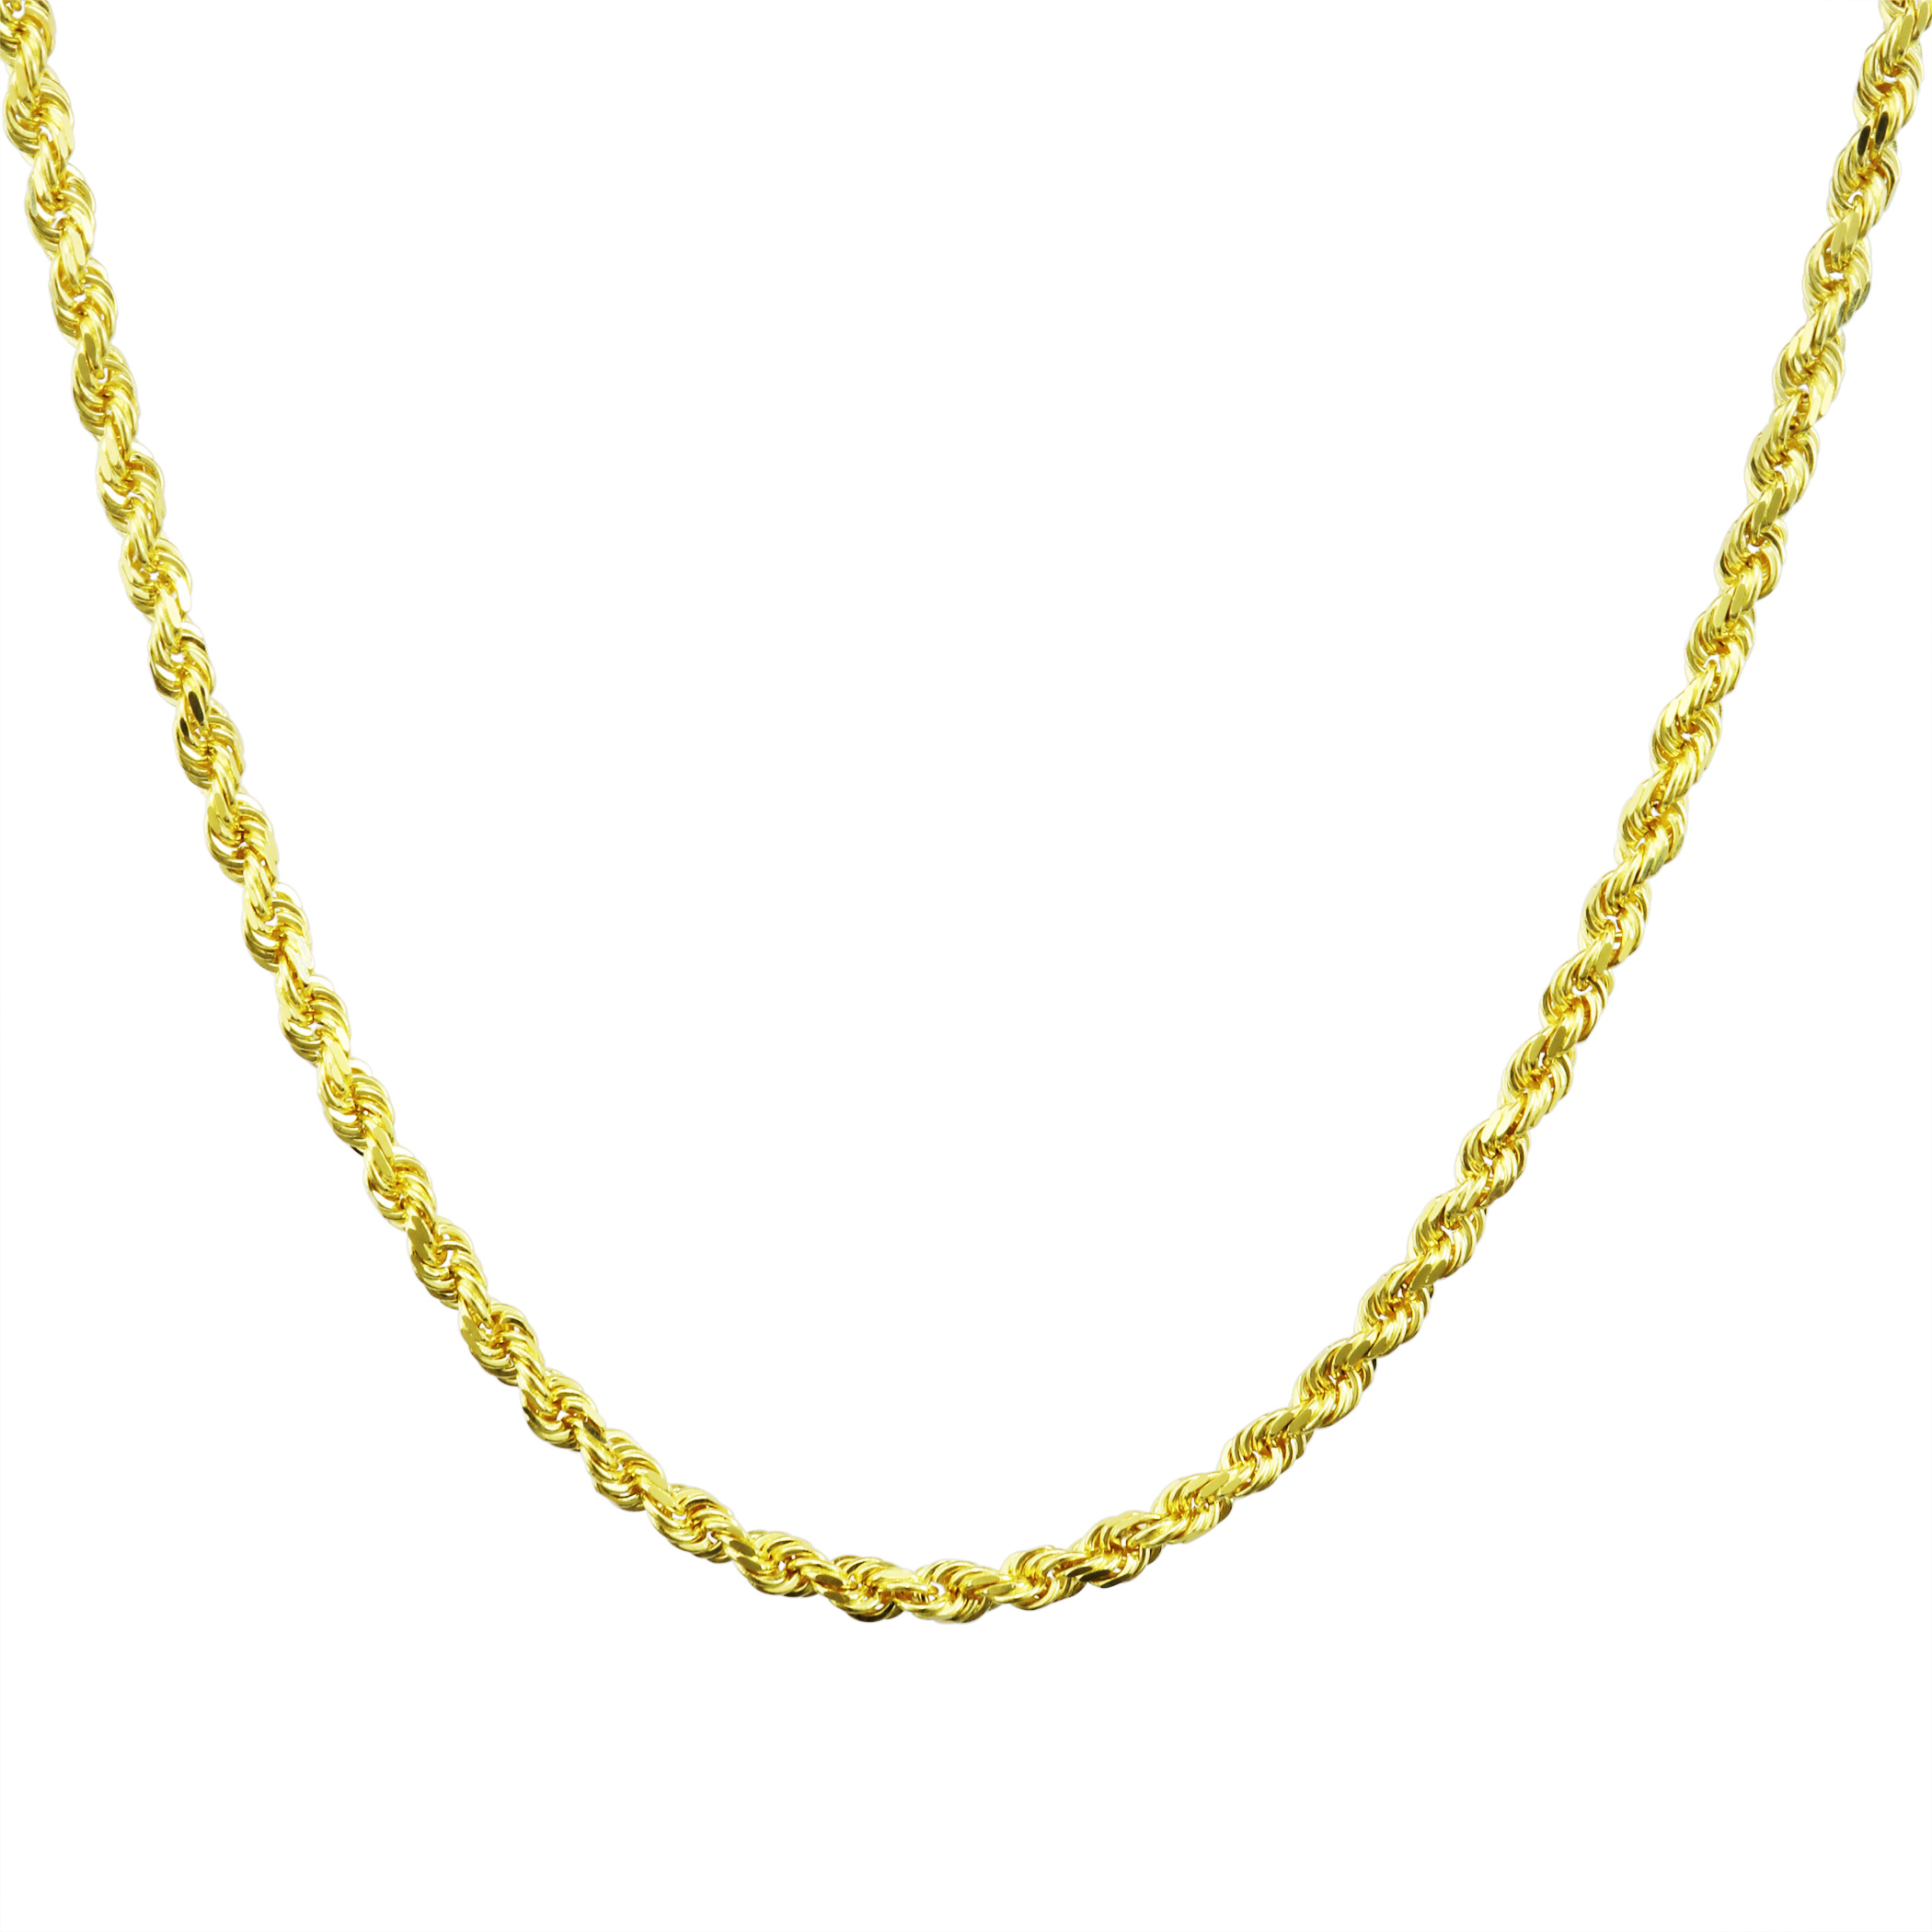 Real-14K-Yellow-Gold-3mm-Diamond-Cut-Rope-Chain-Necklace-Lobster-Clasp-18-034-30-034 thumbnail 93